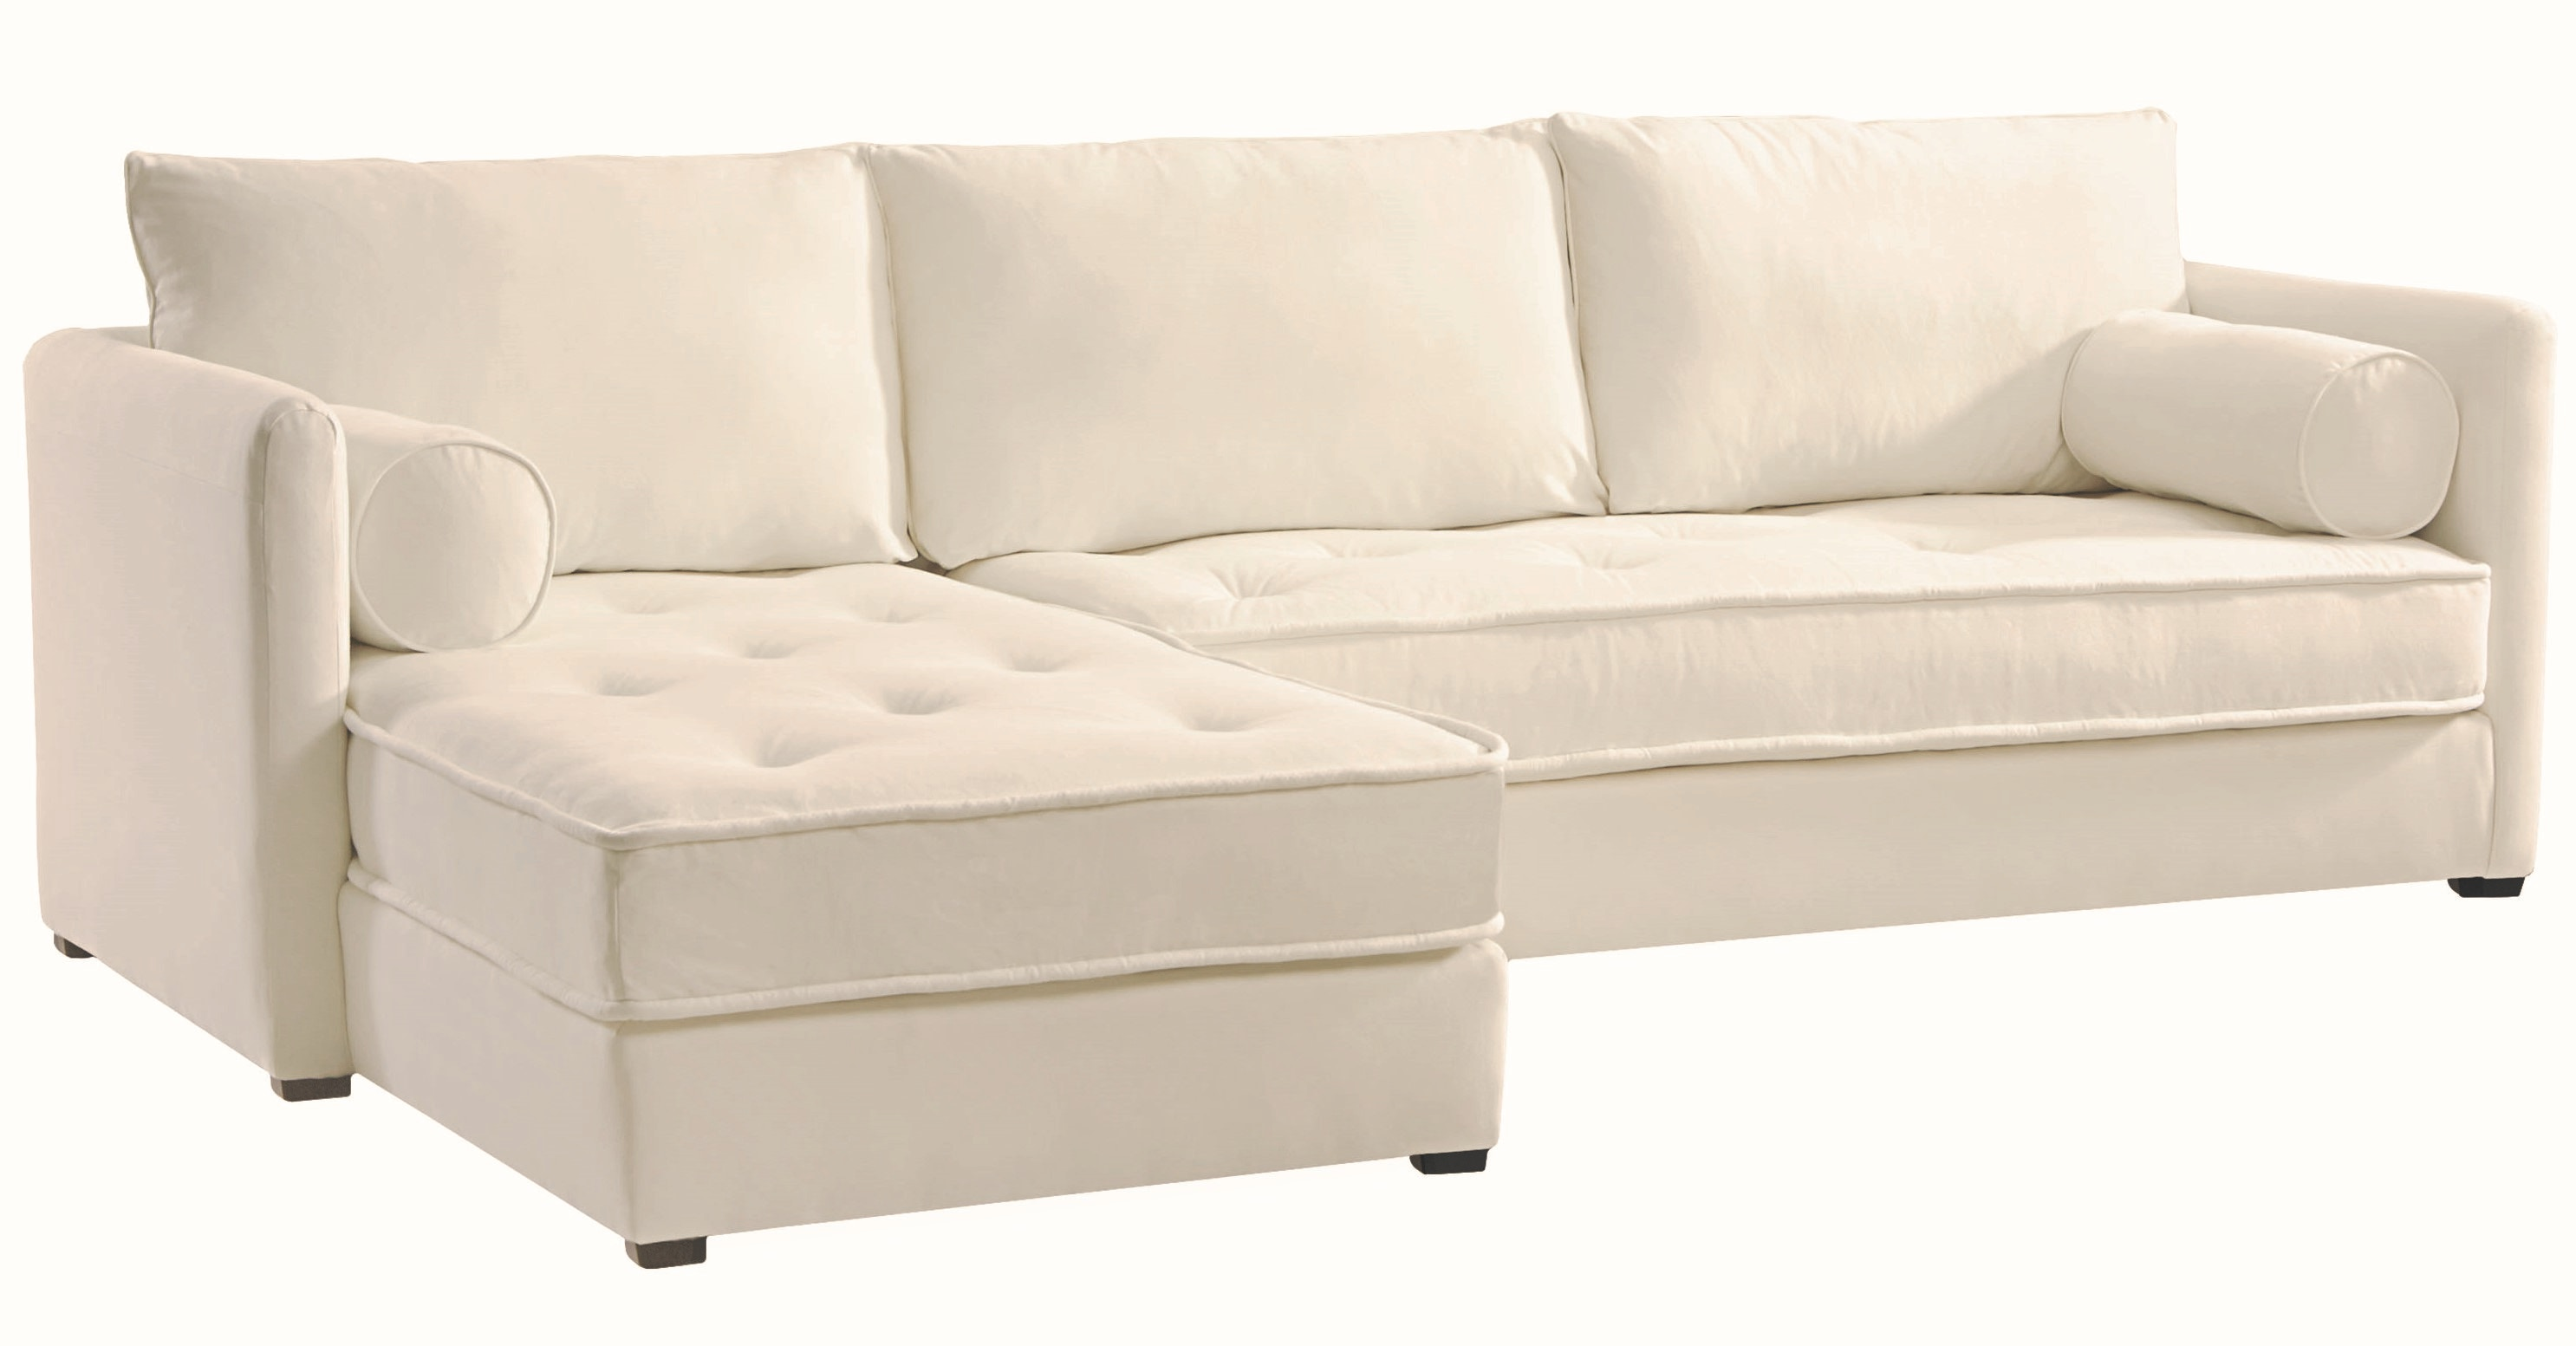 Lee Industries Living Room One Arm Chaise 5656 85lf Georgia